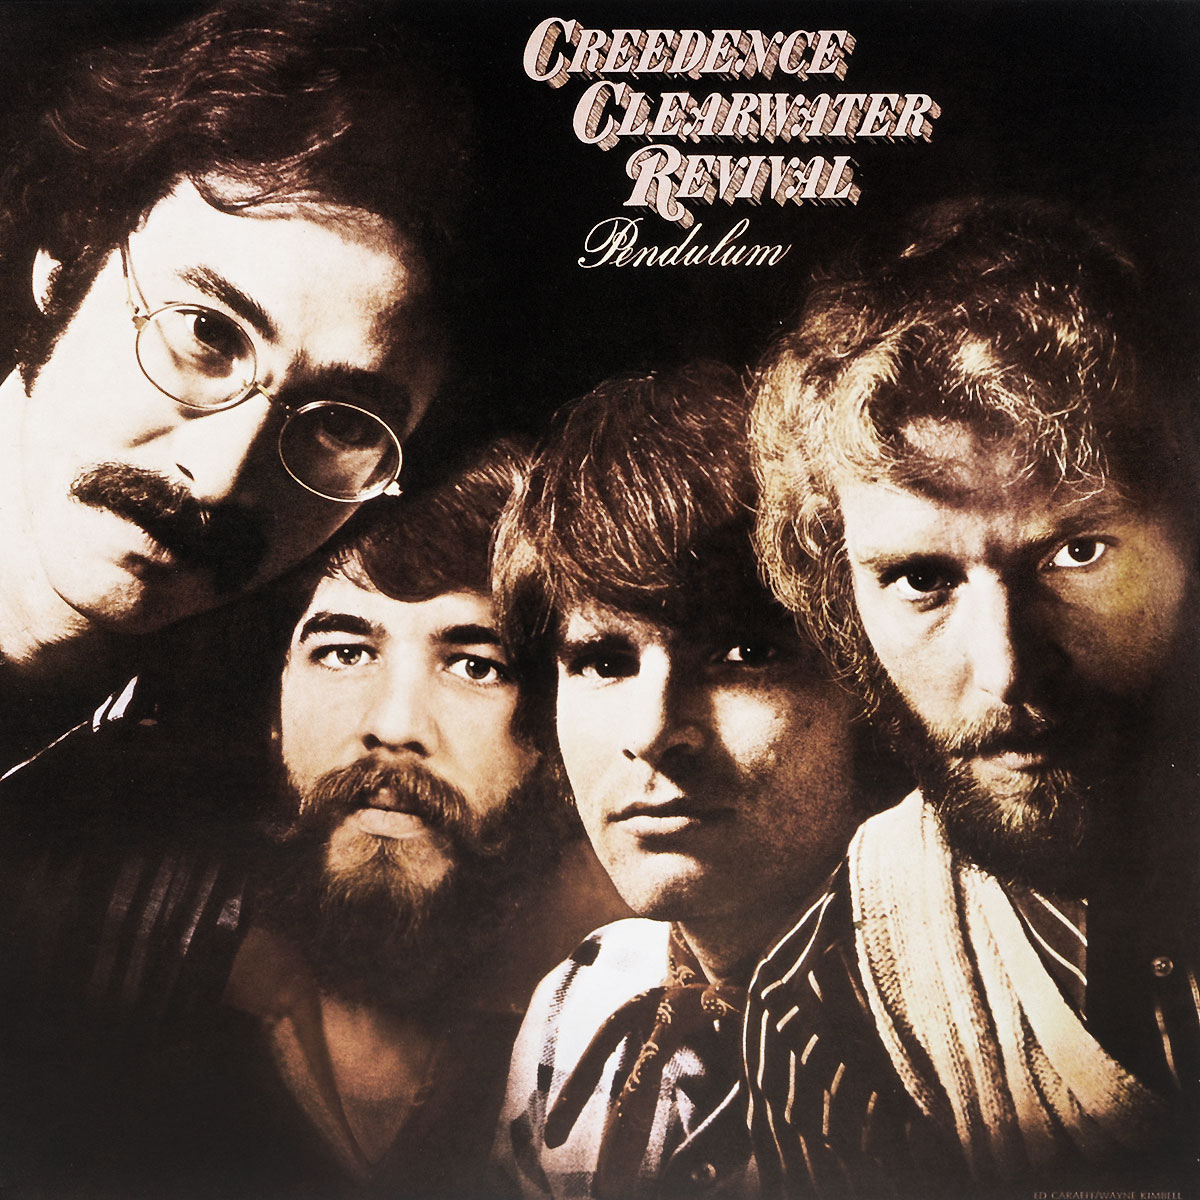 Creedence Clearwater Revival Creedence Clearwater Revival. Pendulum (LP) creedence clearwater revival creedence clearwater revival cosmo s factory lp